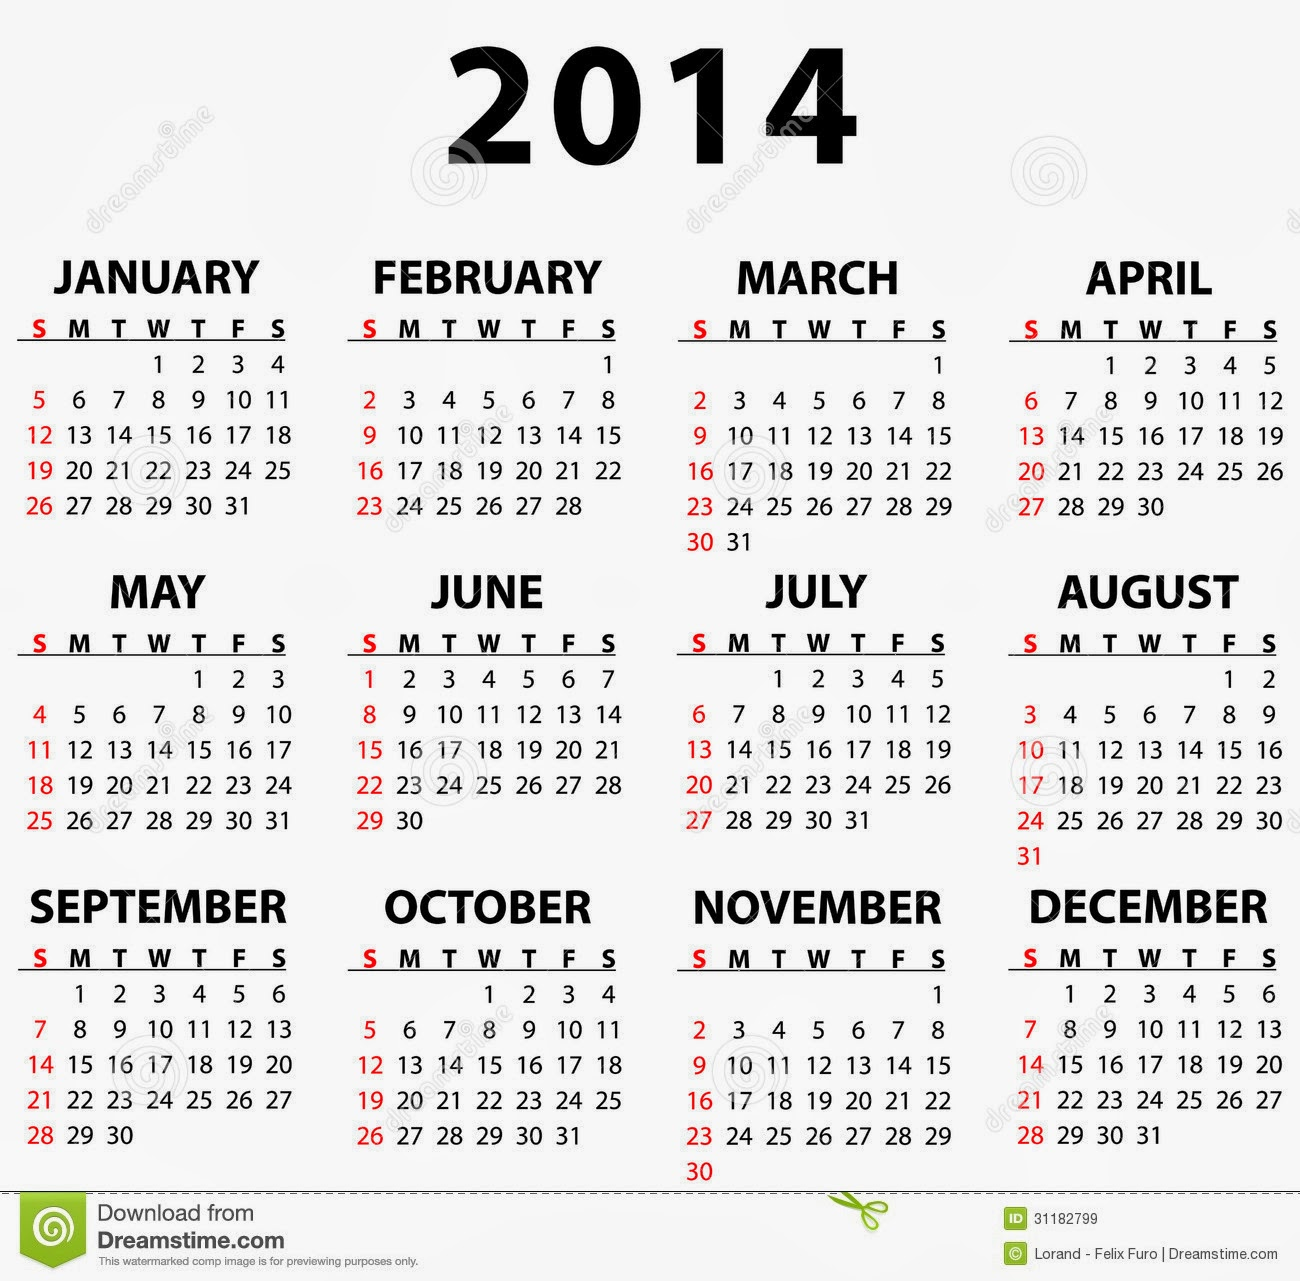 Free calendar templates 2014 to print for 2104 calendar template